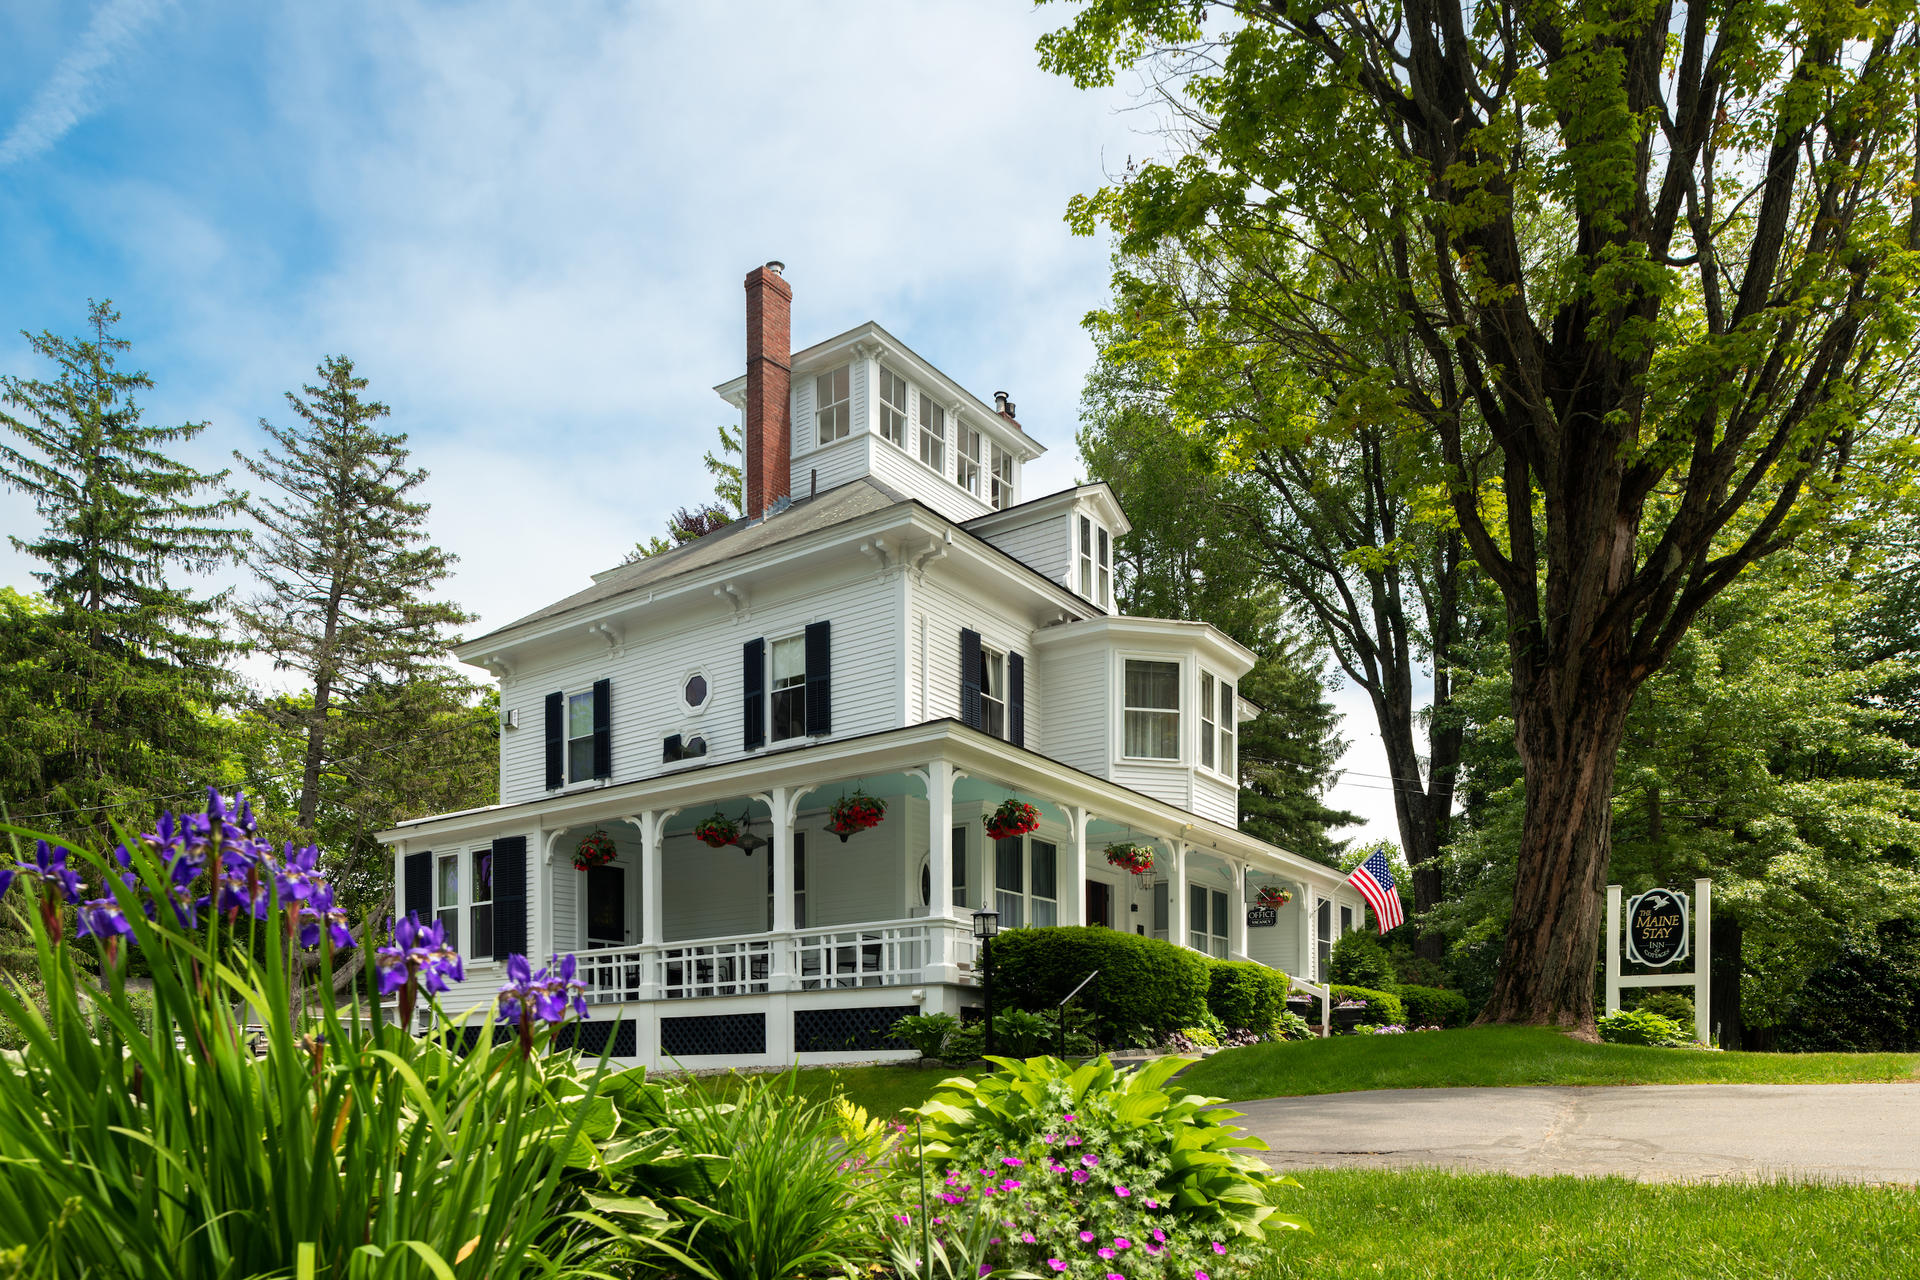 A large white house at Maine Stay Inn & Cottages.